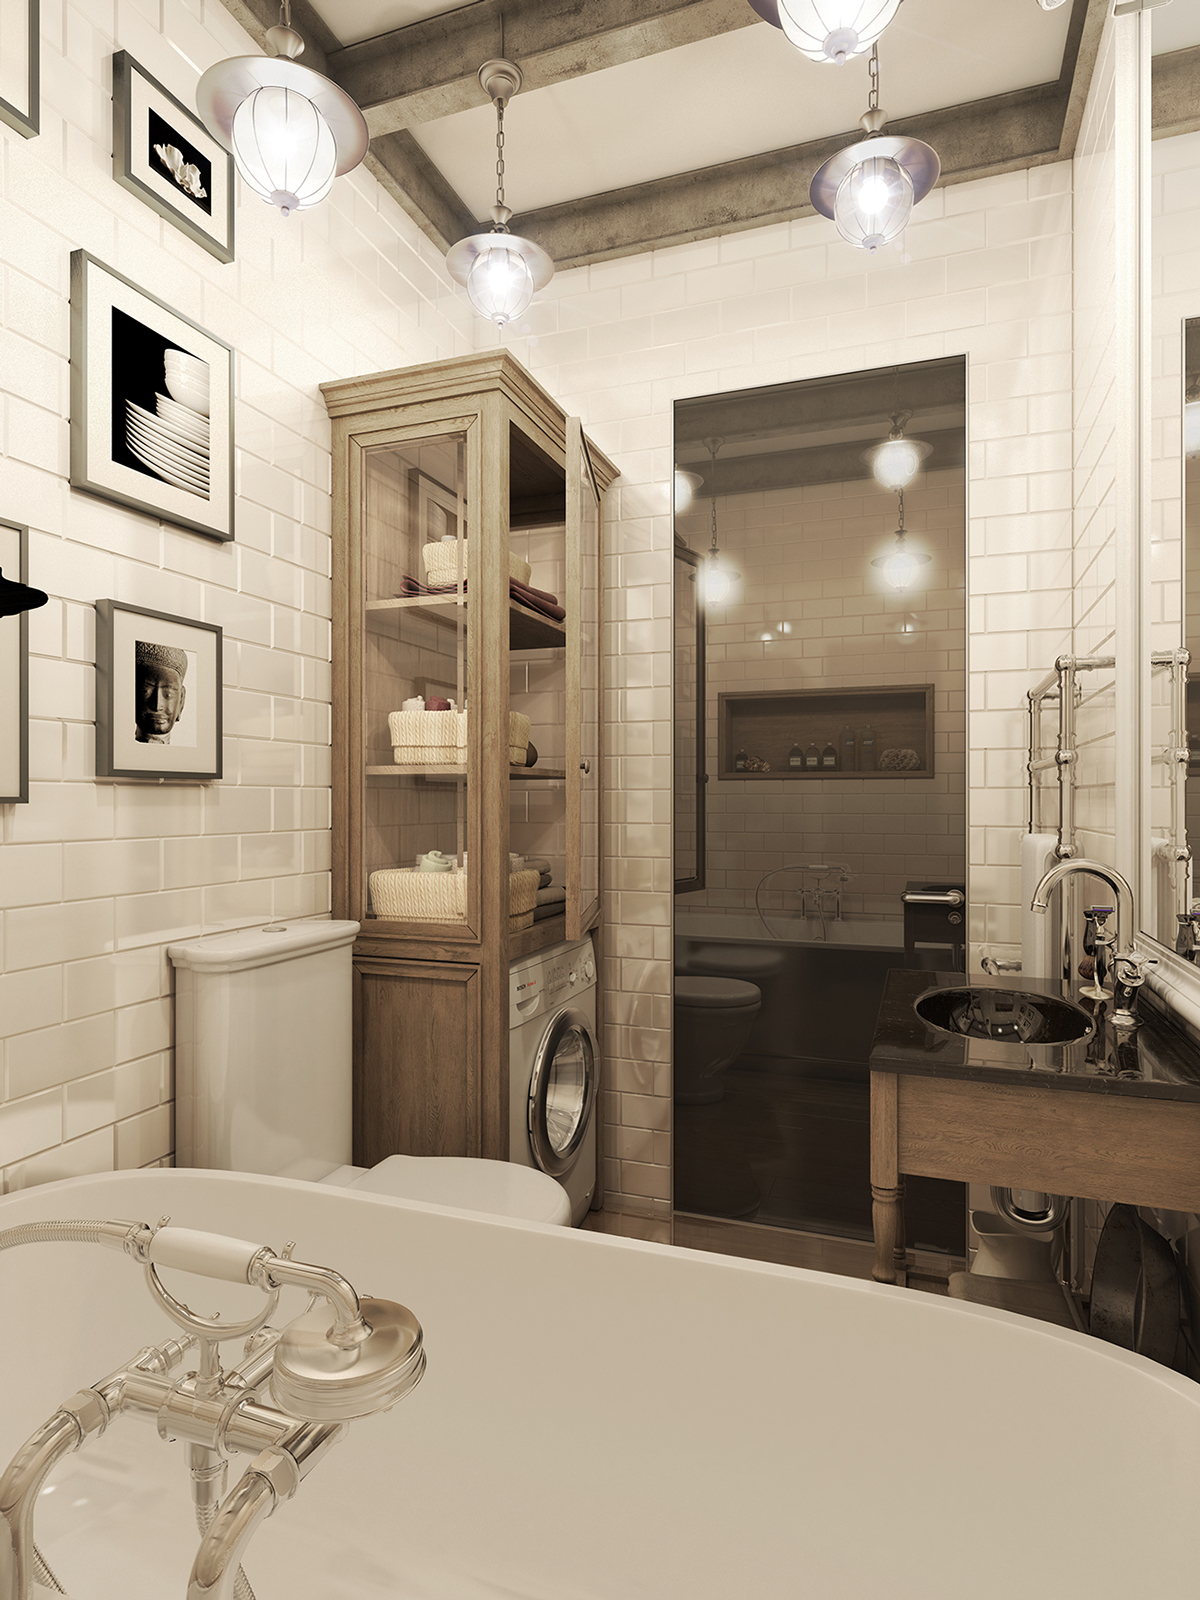 Fashion Bathroom Three Dark Colored Loft Apartments With Exposed Brick Walls